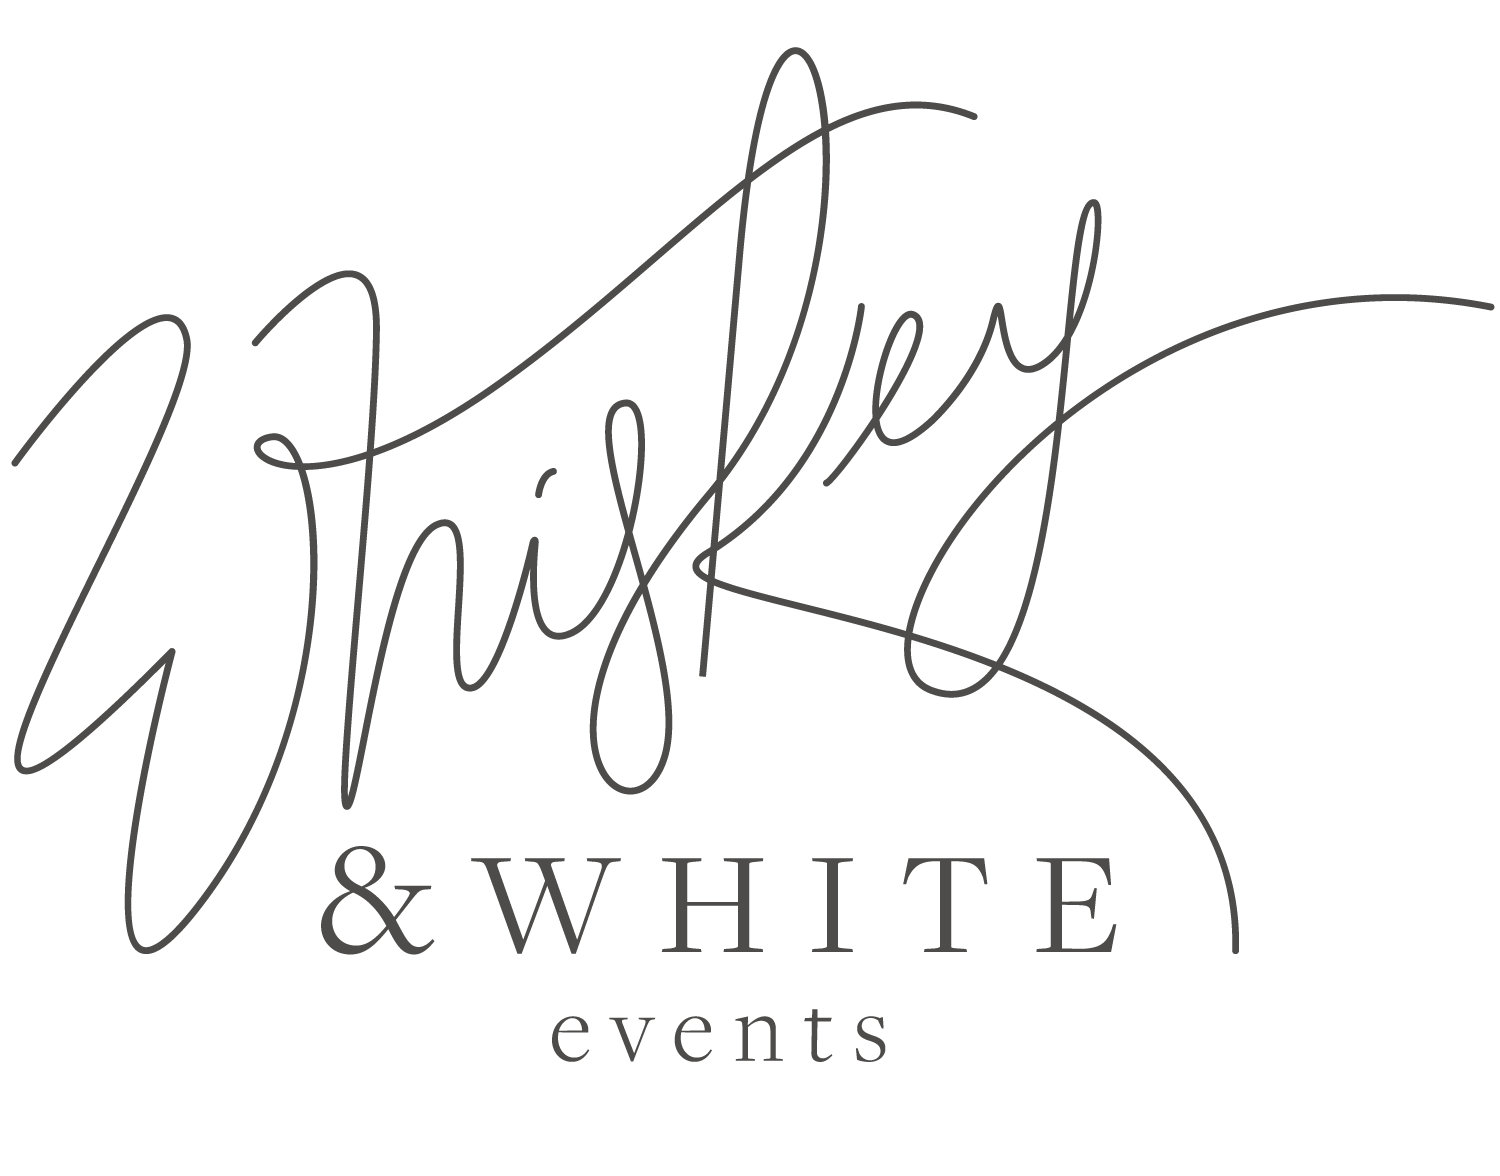 Whiskey & White Events